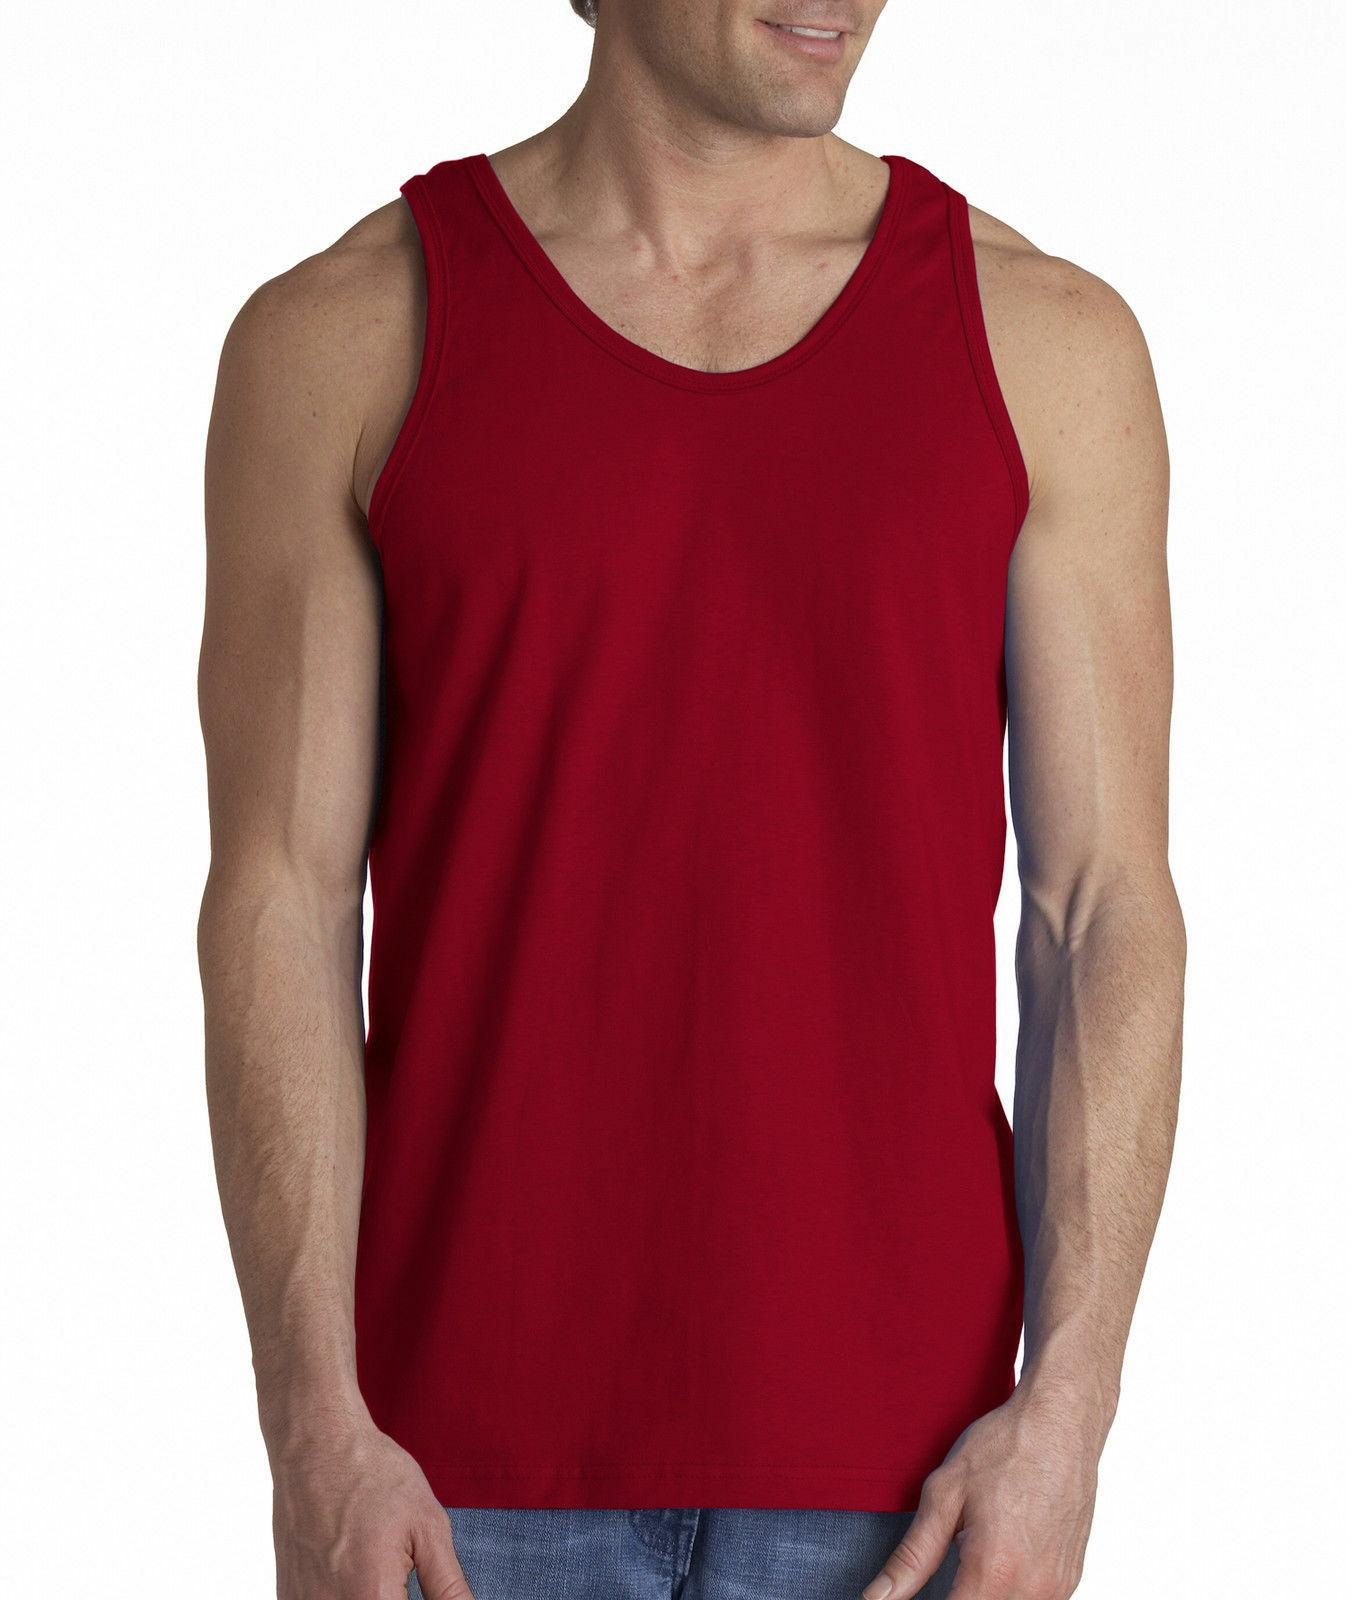 Gym T-Shirts Tee 100%Cotton NEW